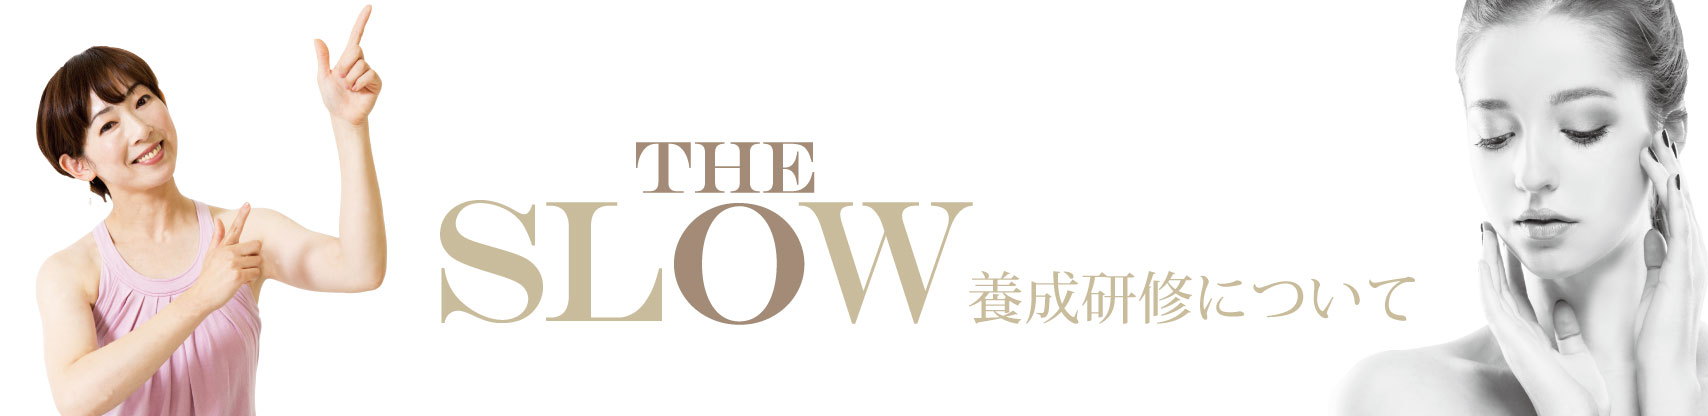 THE SLOW®︎ ストレッチ ボディトリートメント